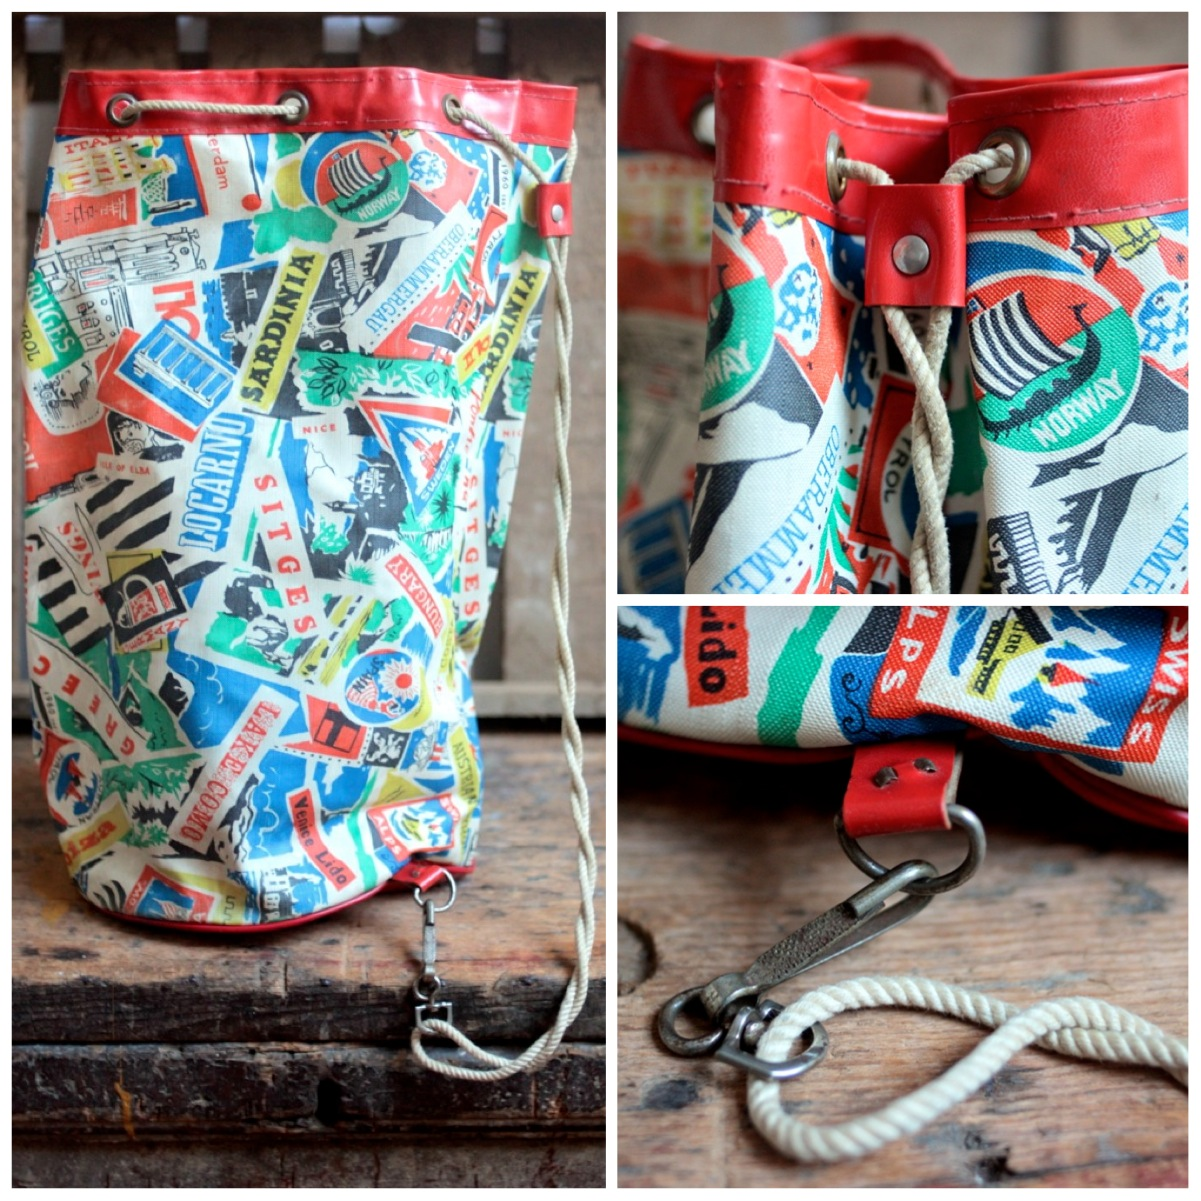 Friday's Featured Item – Retro Vintage Beach Bag with Travel Print